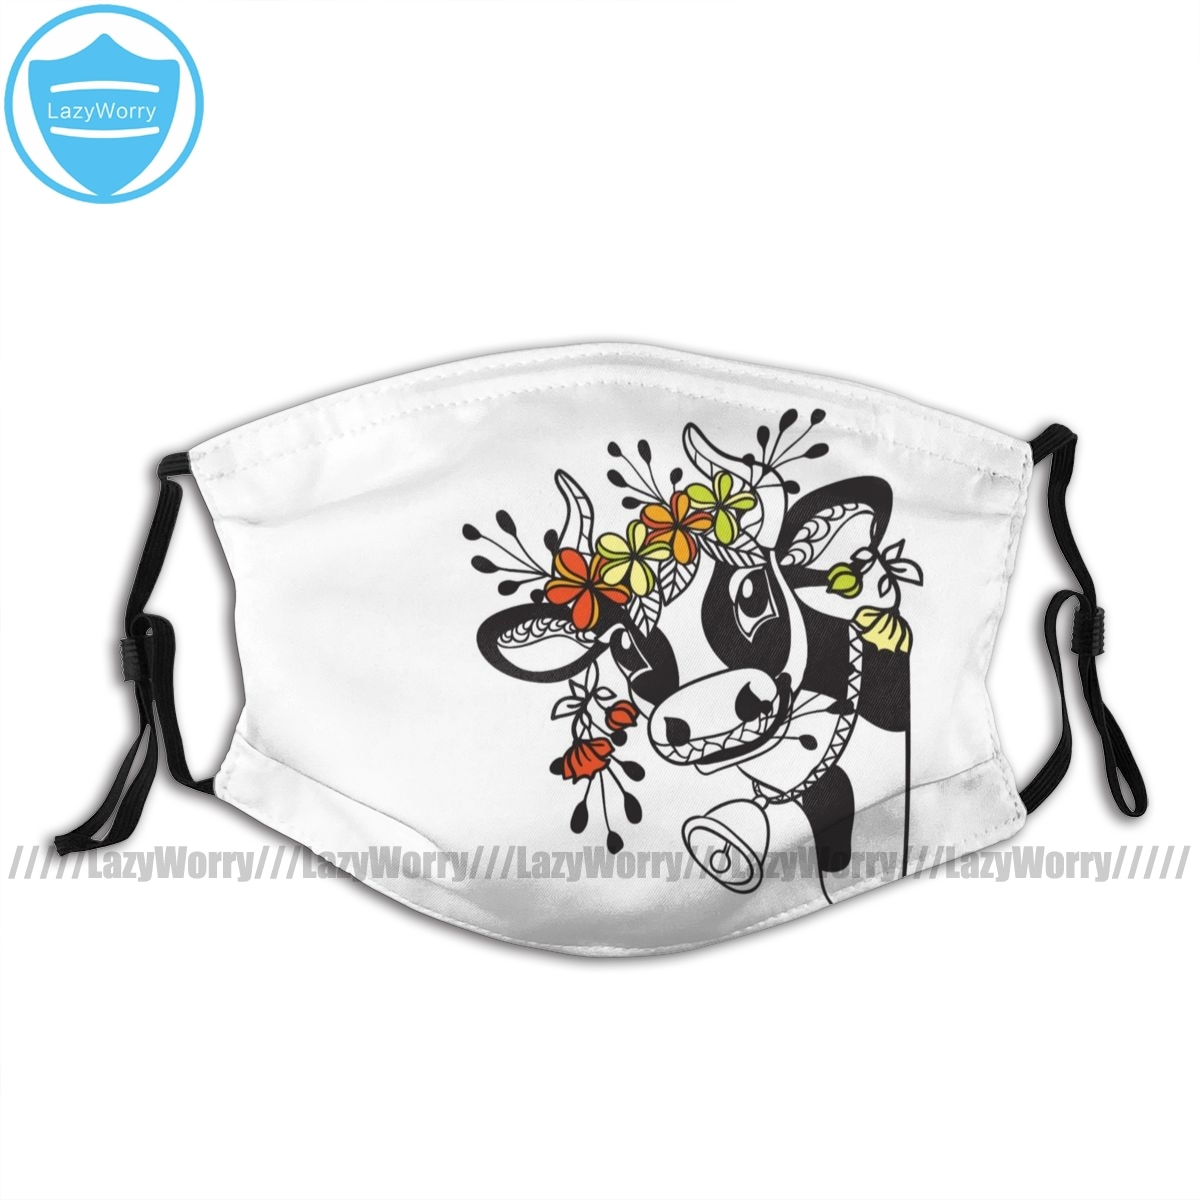 Cow Head Mouth Face Mask Funny Cow Head With Flowers Facial Mask with 2 Filters Pretty Adult Kawai Mask  недорого